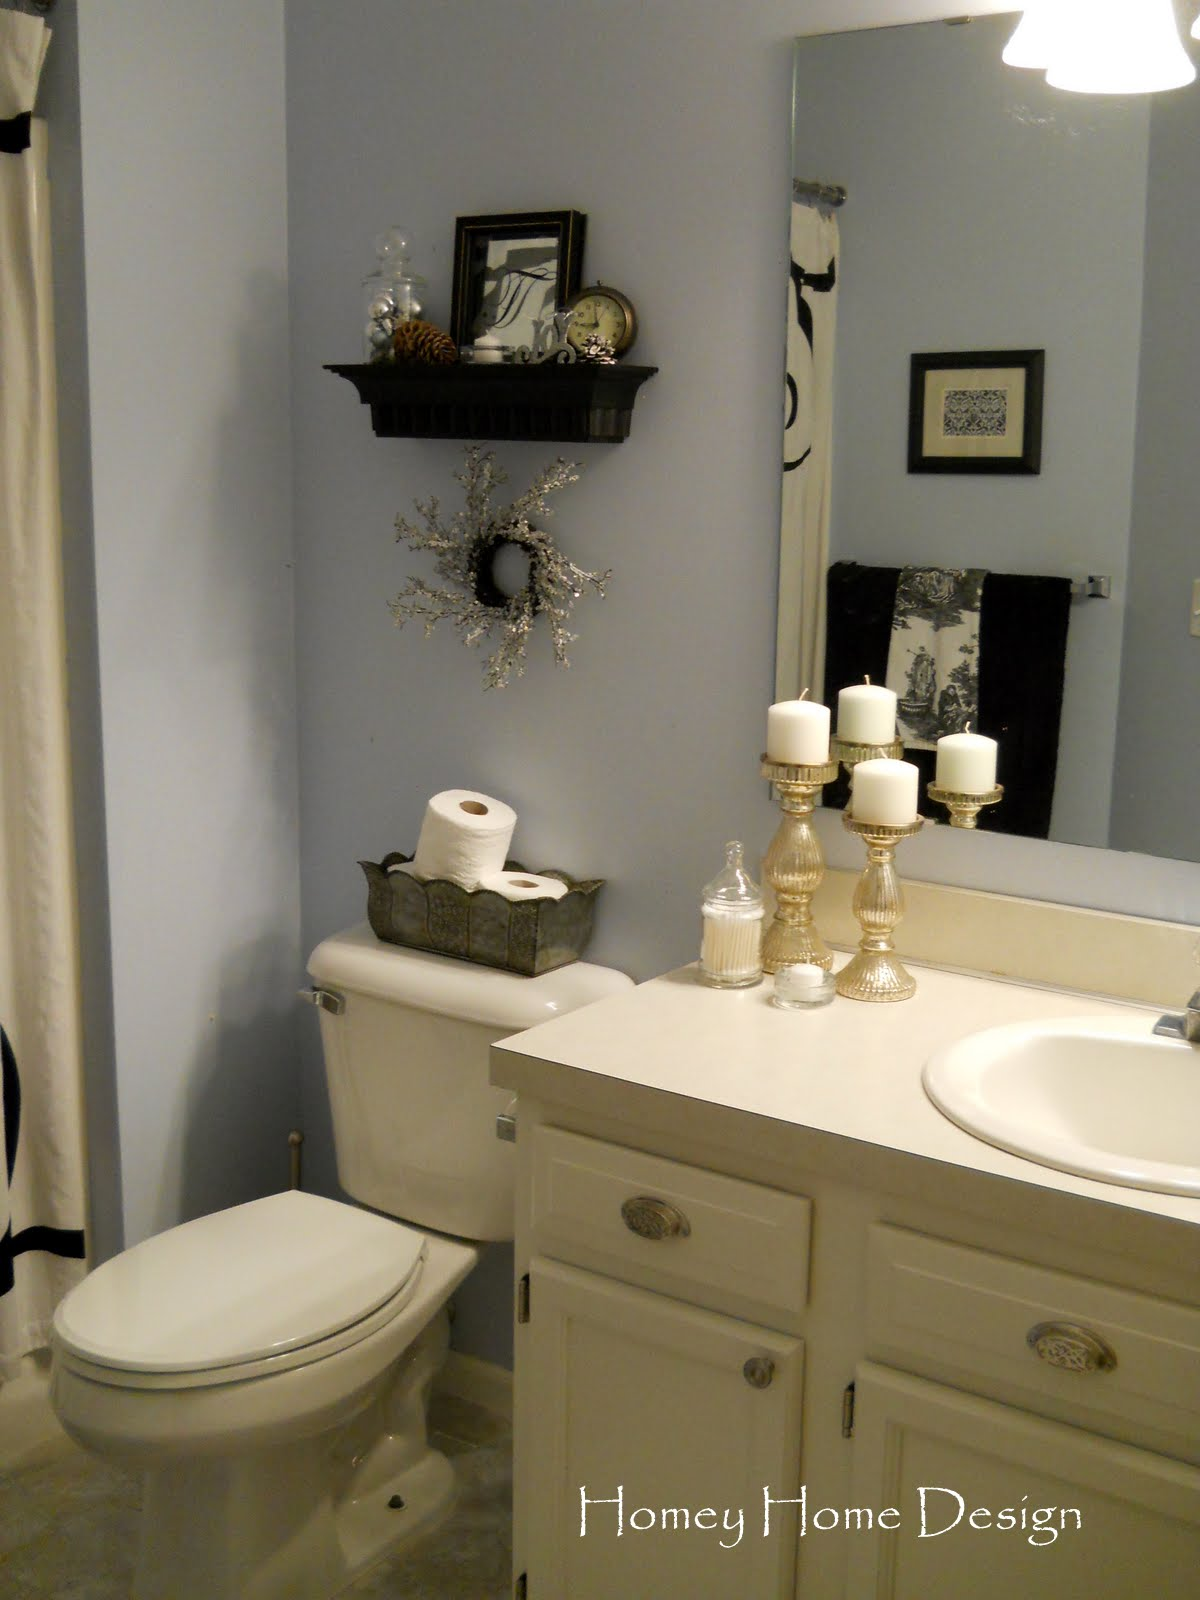 Homey home design christmas in the bathroom for Popular bathroom decor